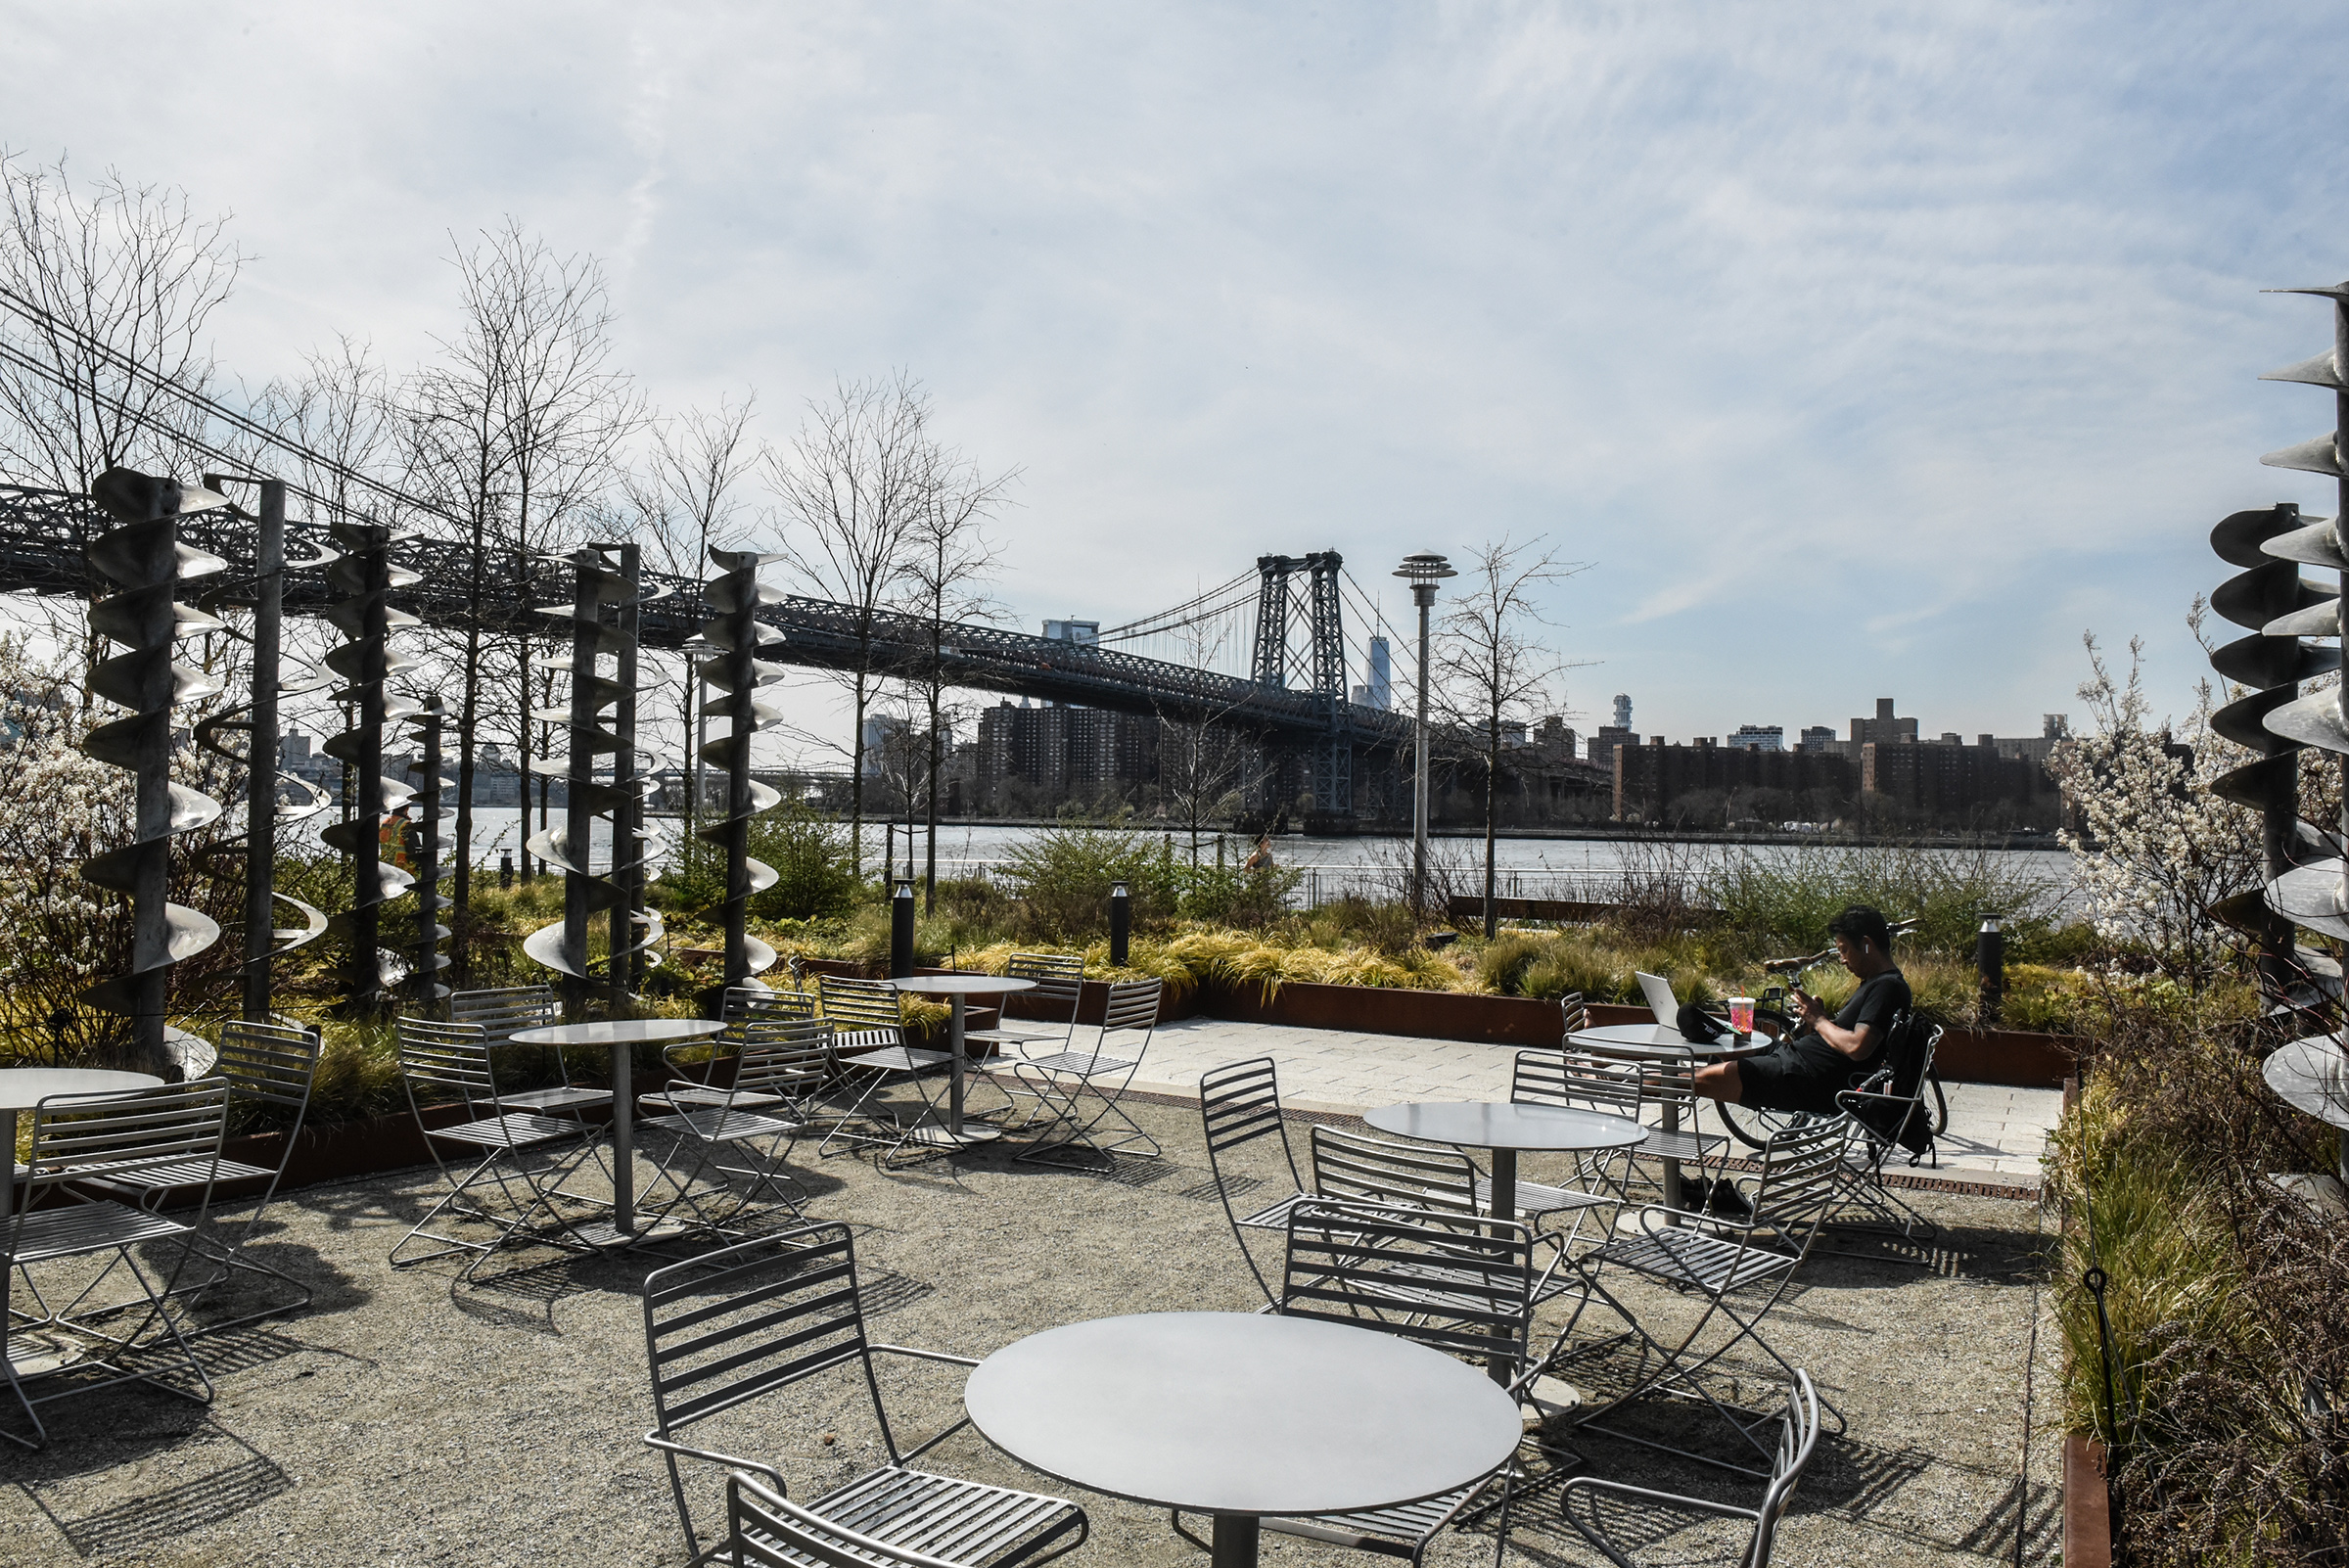 A person sits amongst empty tables and chairs at Domino Park in Williamsburg, Brooklyn on April 7